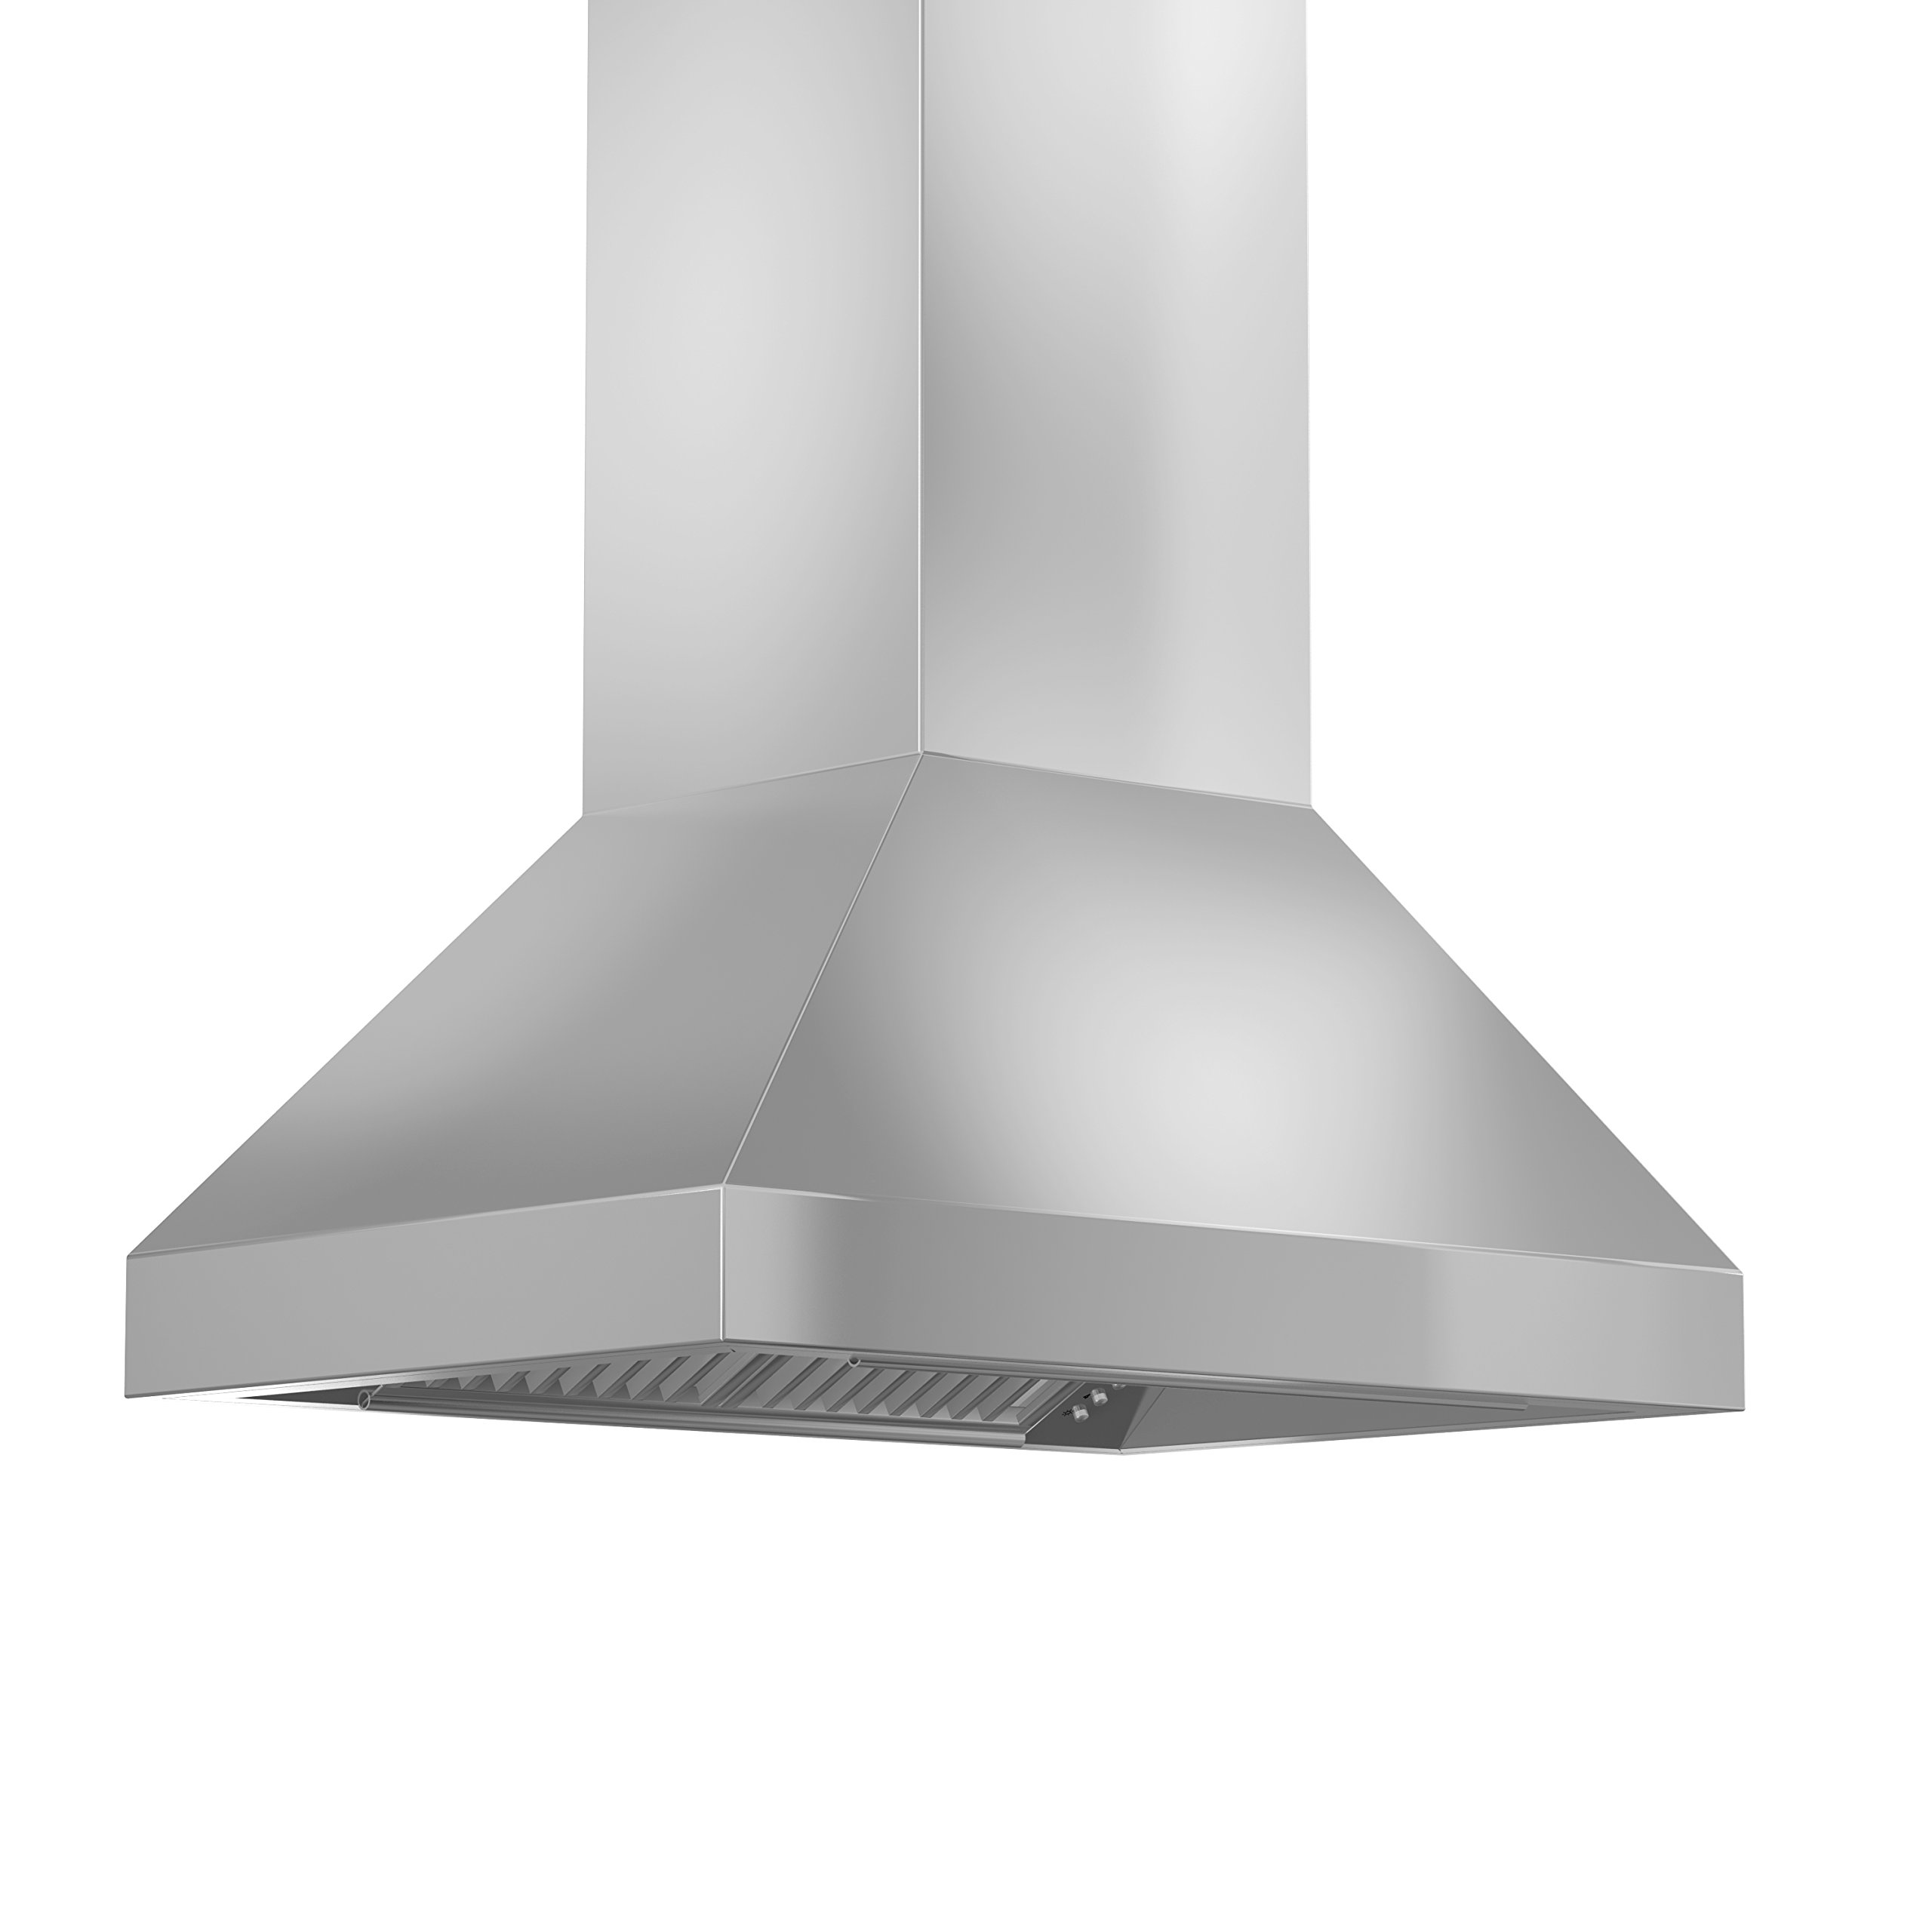 ZLINE 36 in. 900 CFM Island Mount Range Hood in Stainless Steel with Remote Single Blower